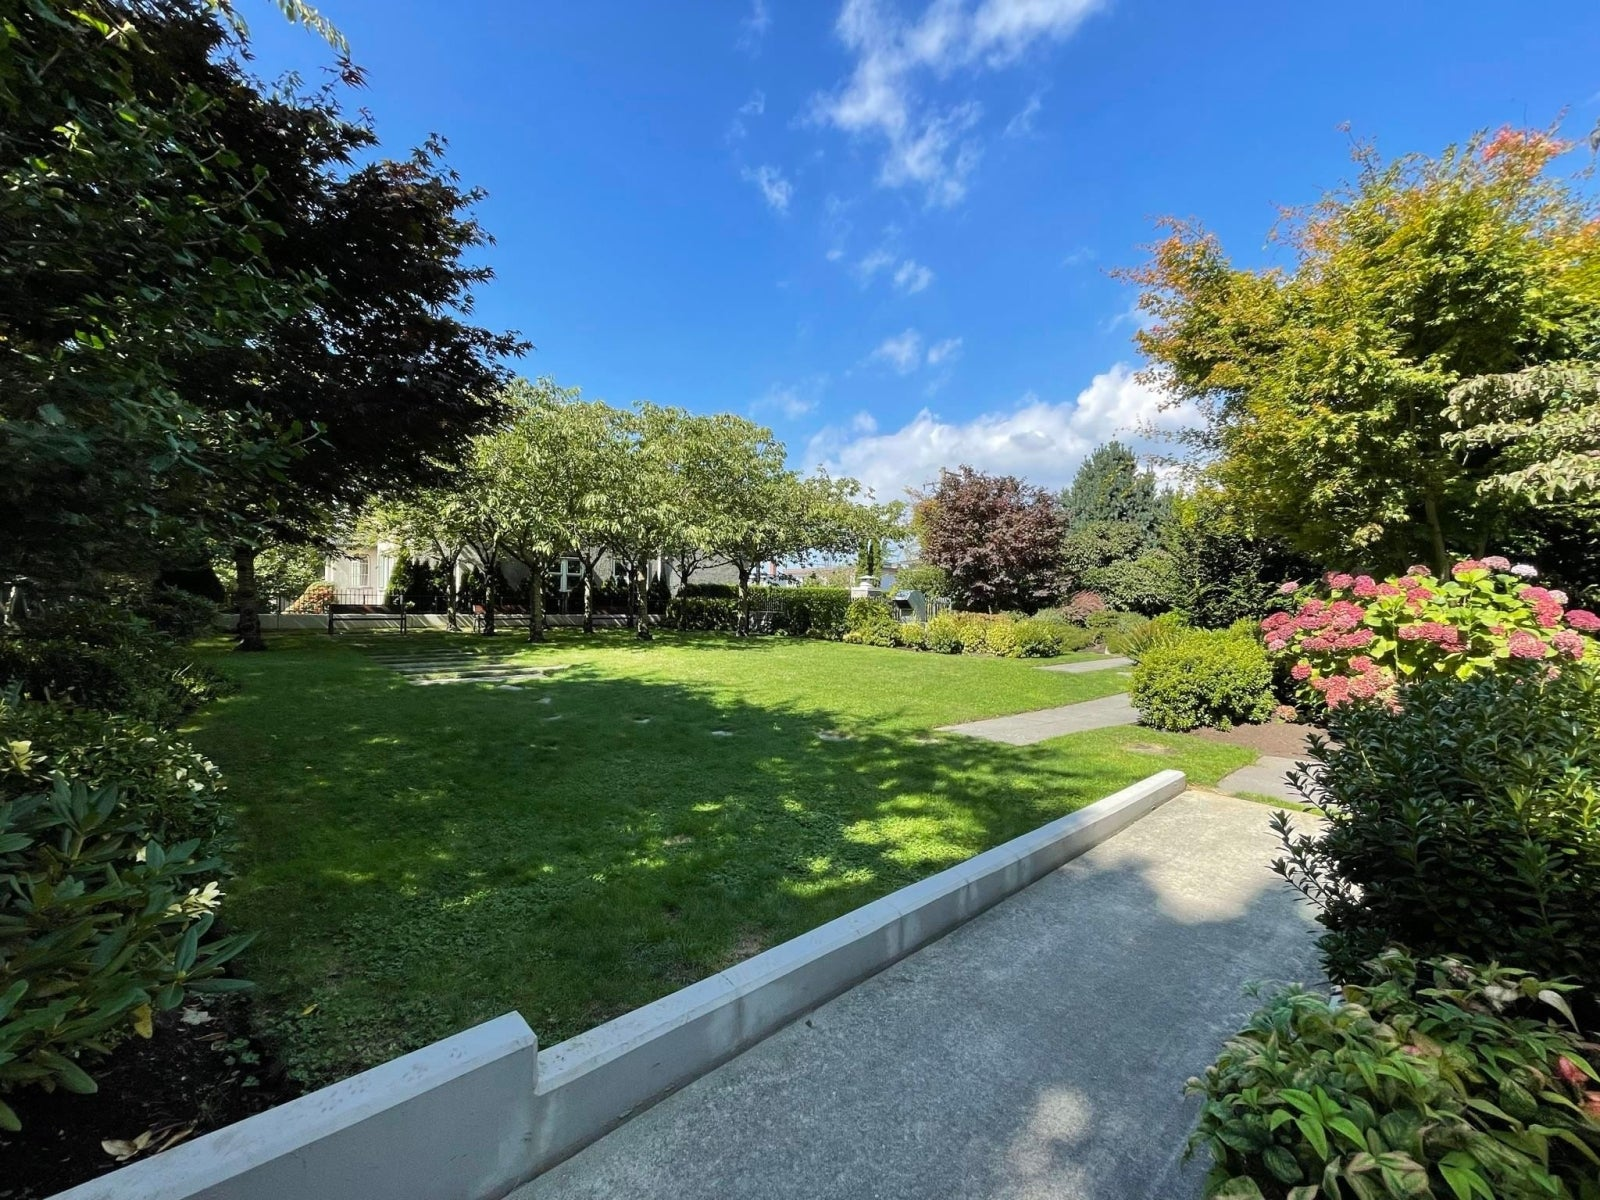 803 1333 W 11TH AVENUE - Fairview VW Apartment/Condo for sale, 2 Bedrooms (R2616288) #37